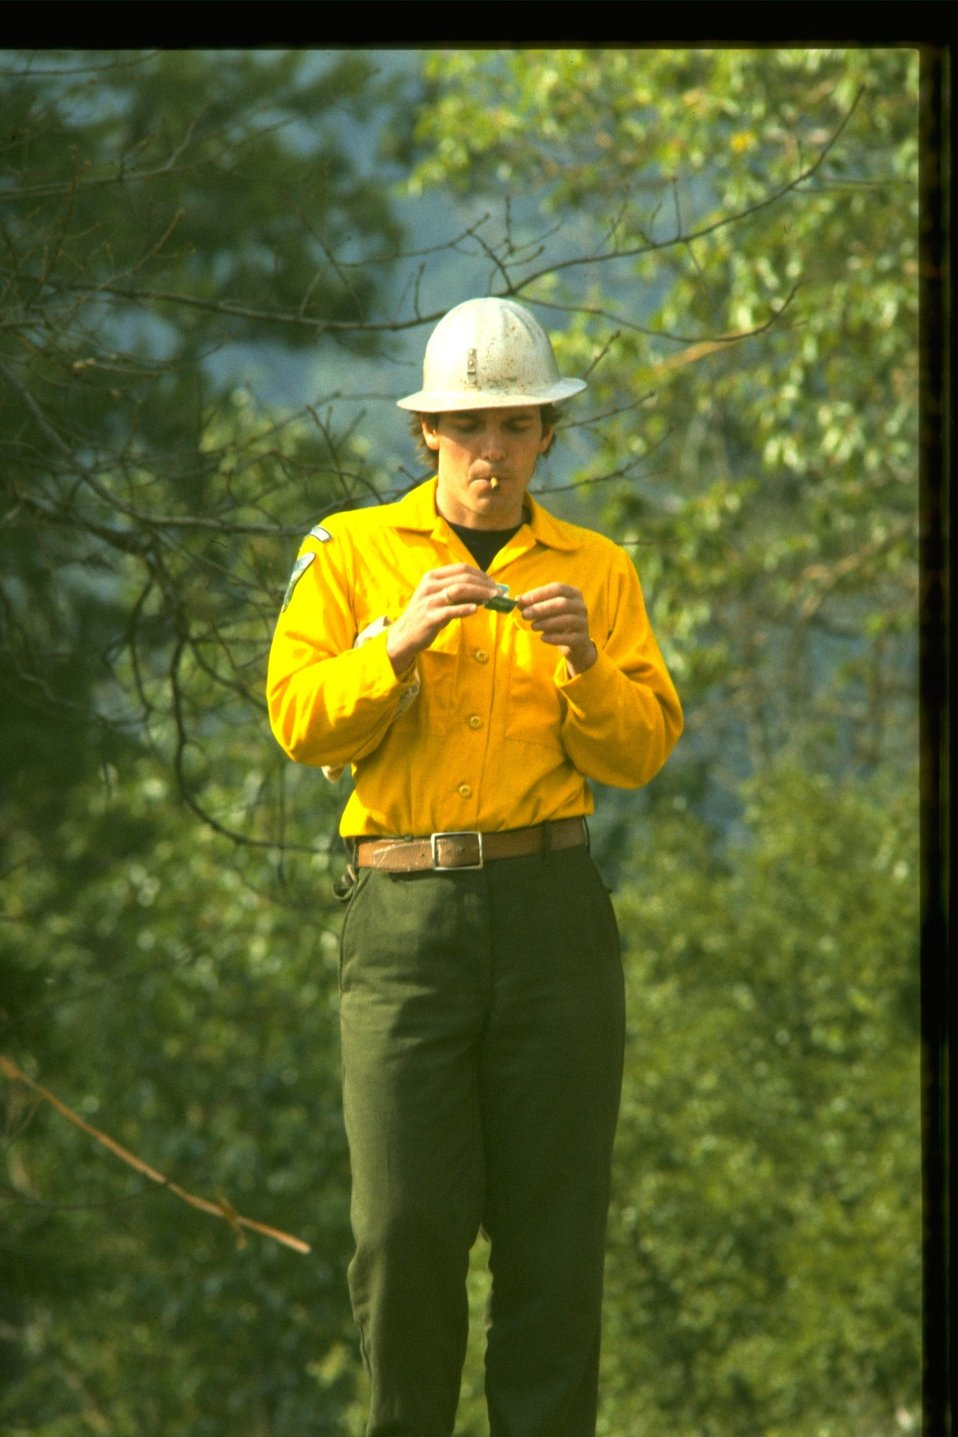 Firefighter standing in the woods.